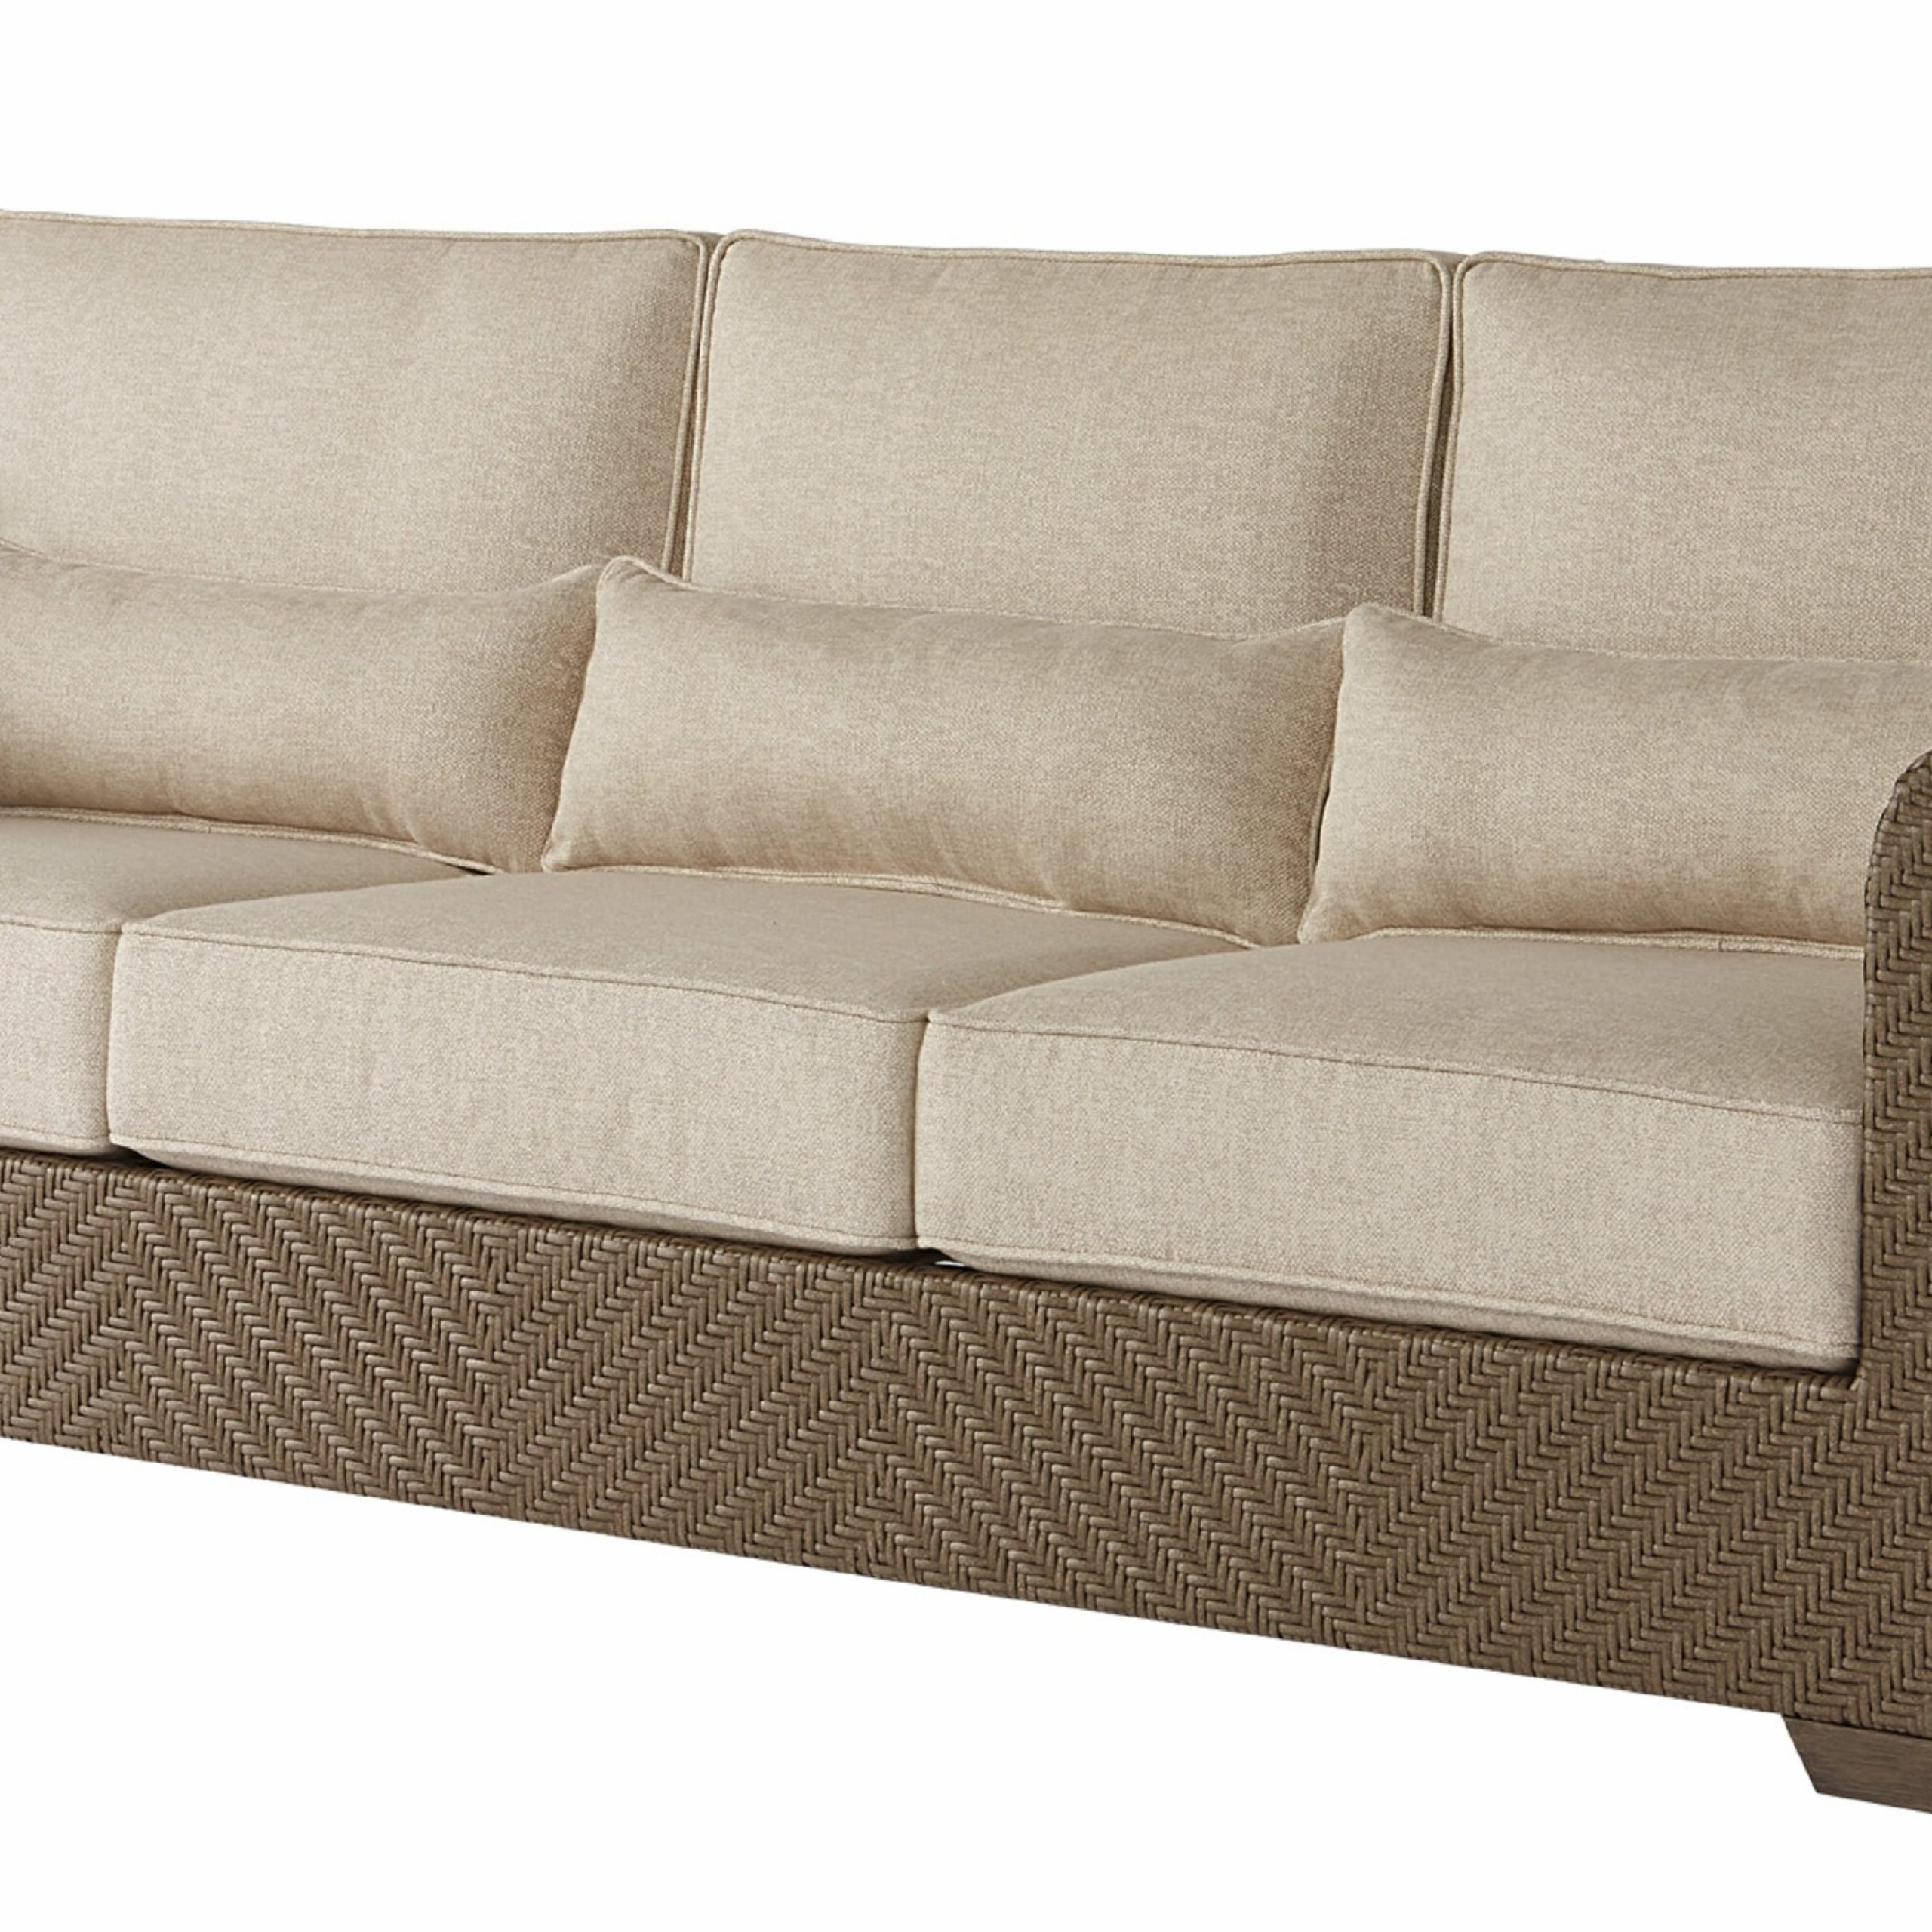 Latest Salvato Sofas With Cushion With Regard To Astrid Wicker Patio Sofa With Cushions (View 7 of 25)